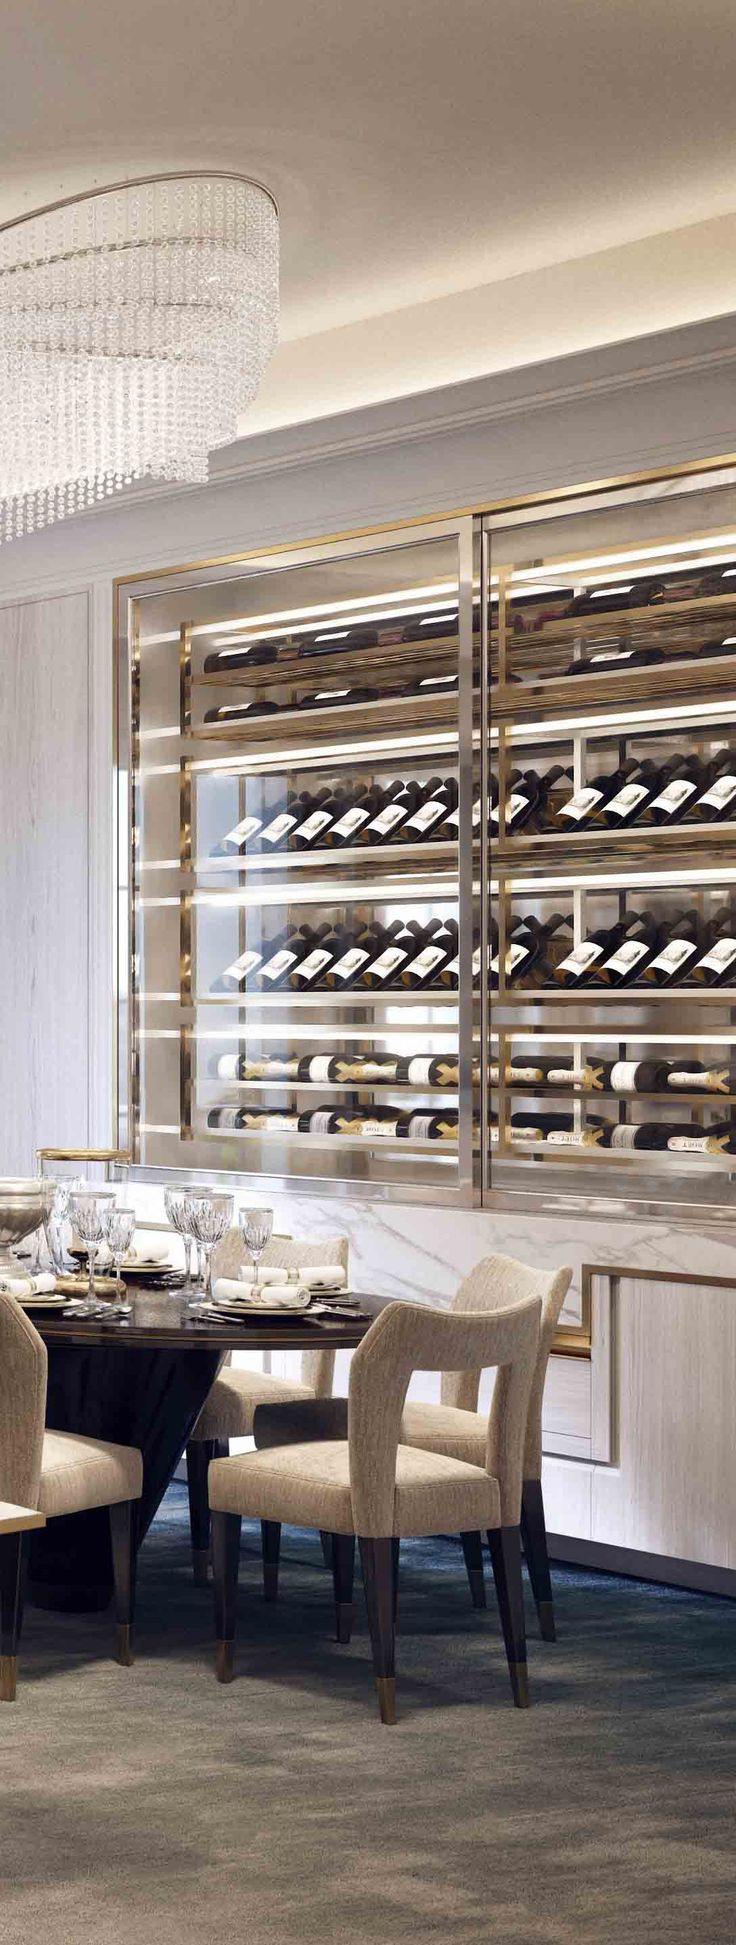 Wine Wall, Villa la Vague - Morpheus London #wine #storage